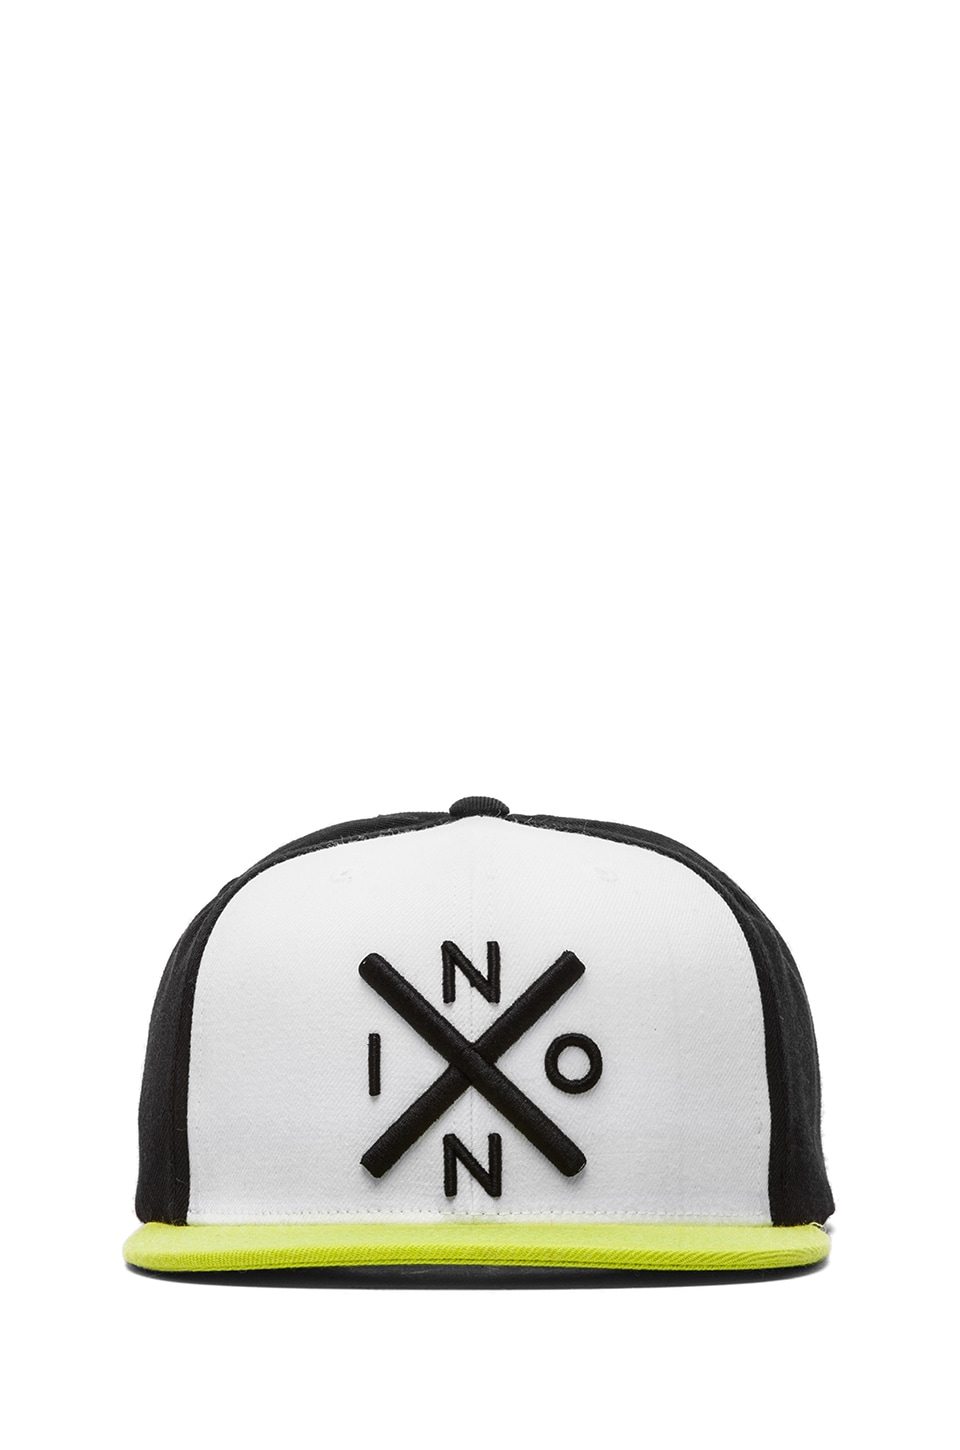 Nixon Exchange Snap Back in White & Black & Citron